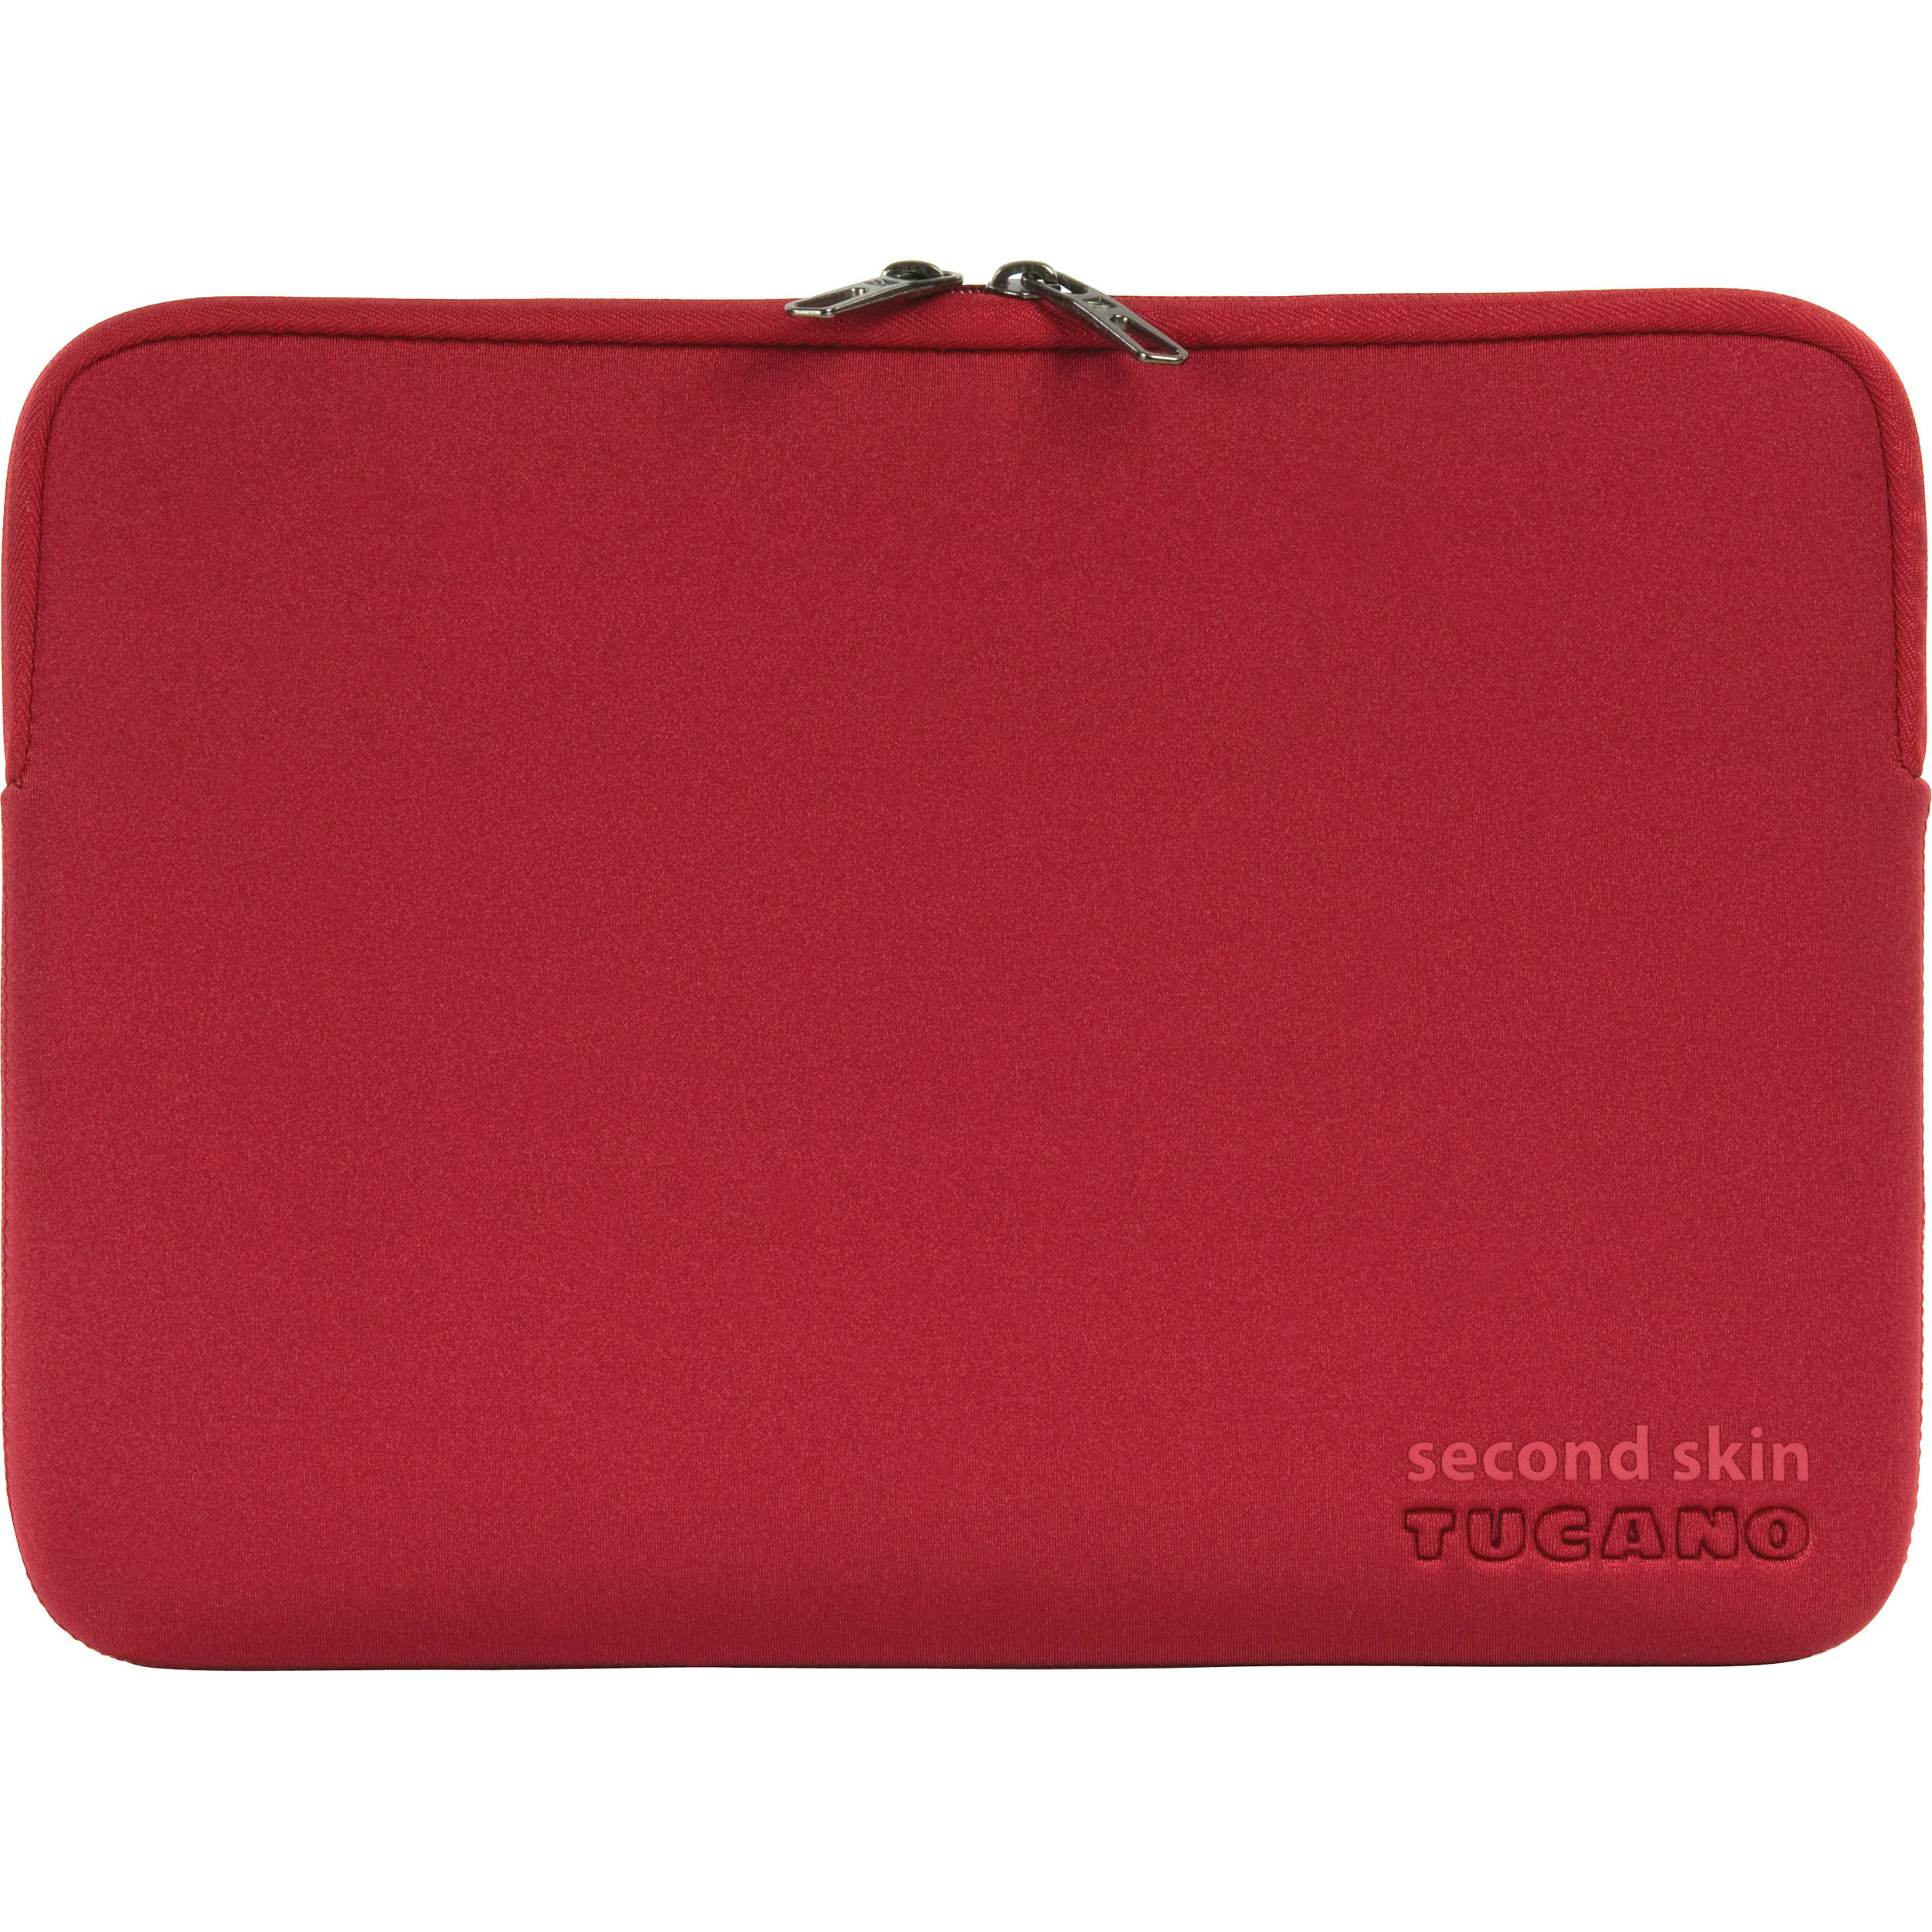 Tucano Element Sleeve For 13 Macbook Pro Macbook Bfeus Mb13 R